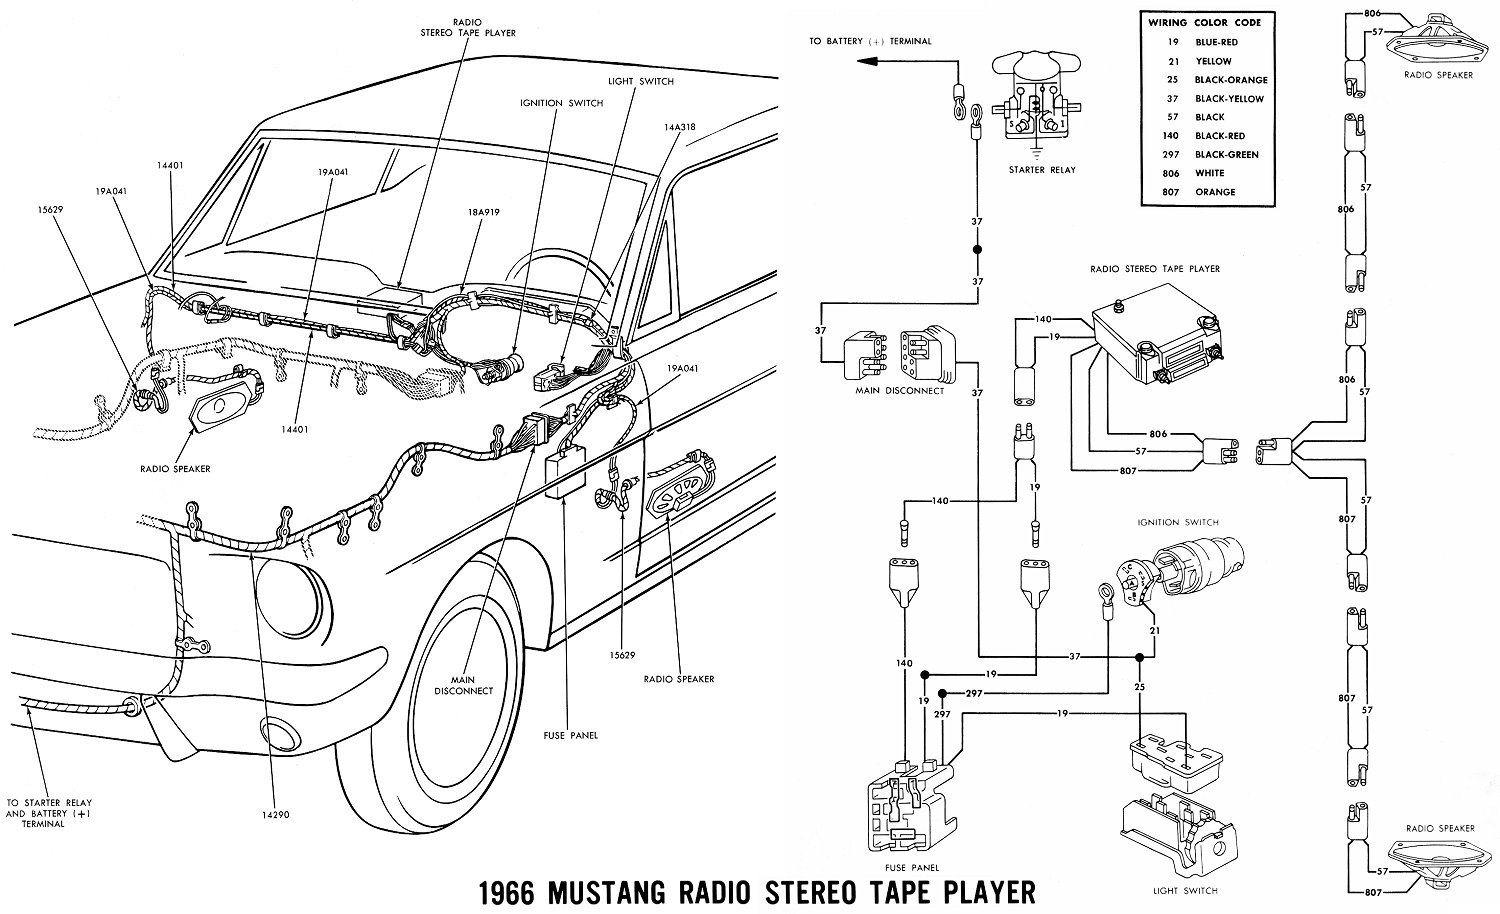 1966 mustang wiring diagrams - average joe restoration, Wiring diagram